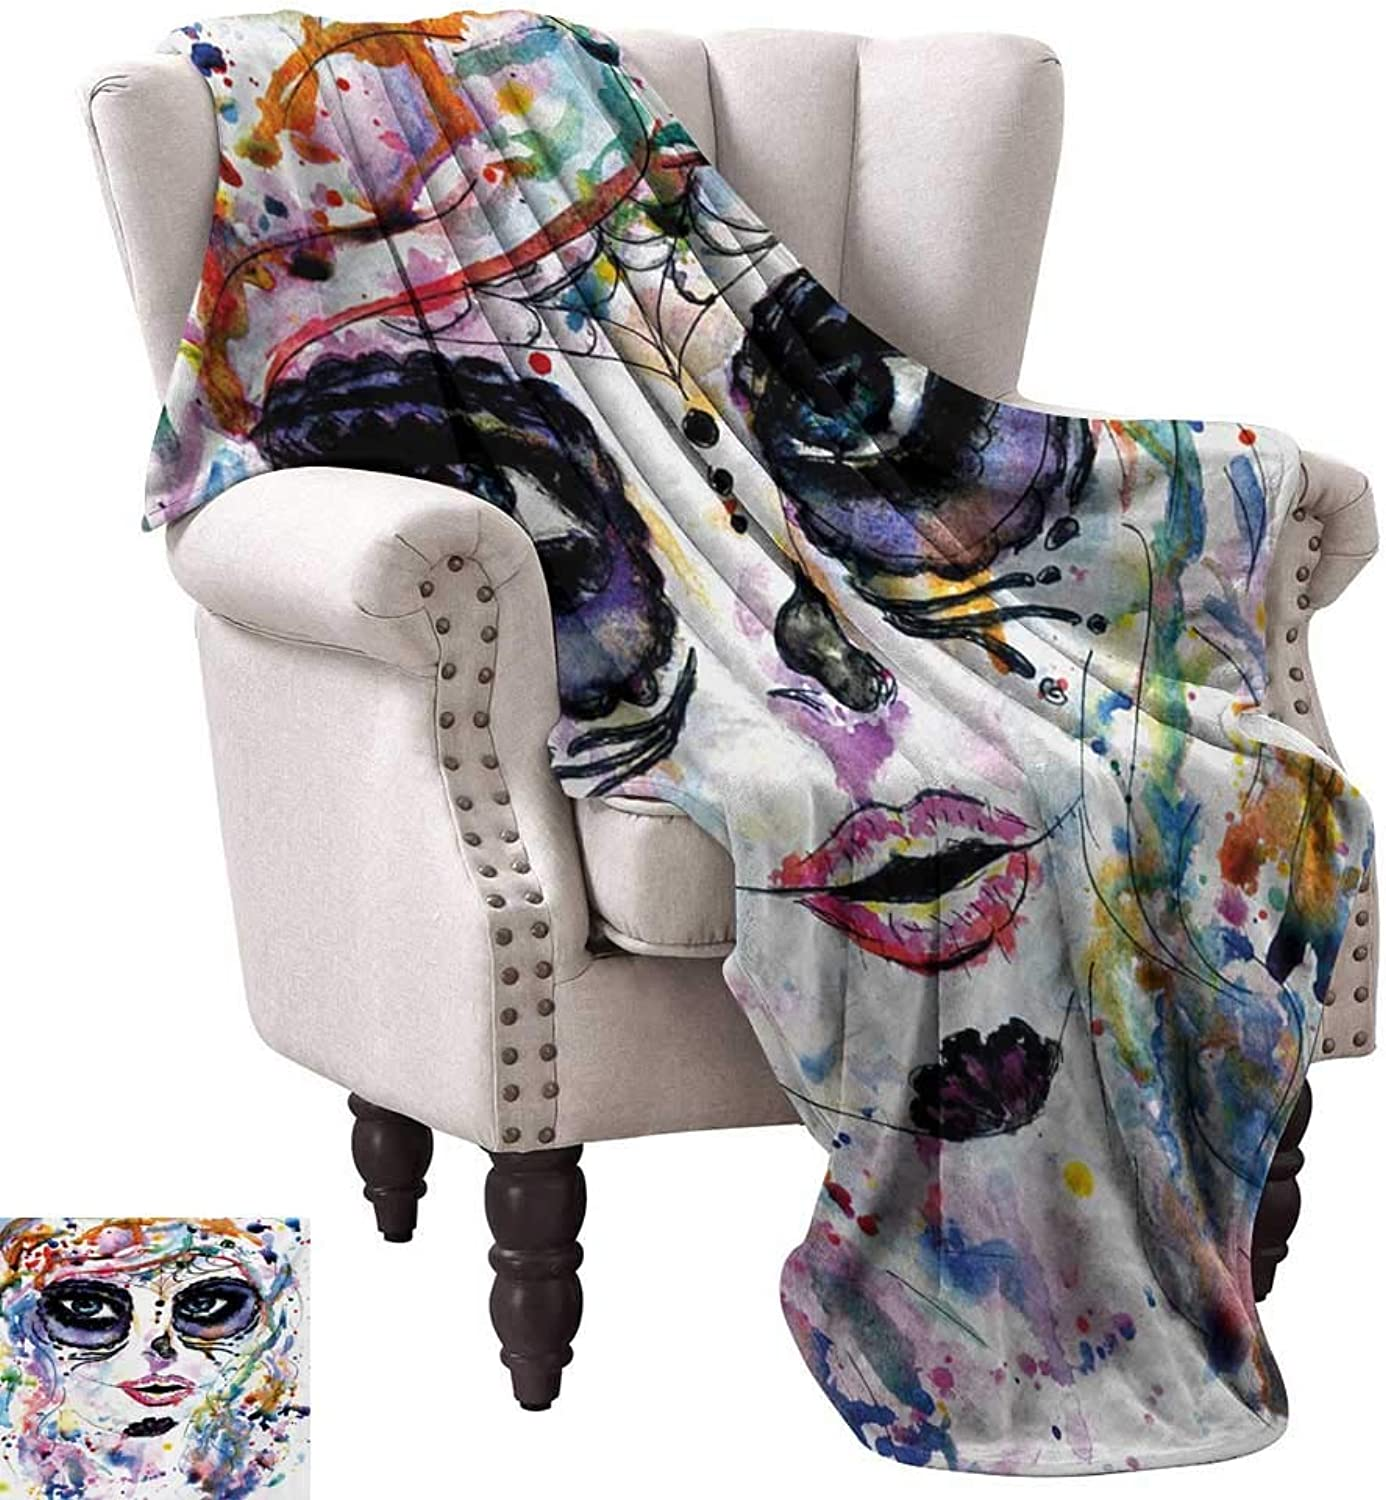 Anyangeight Weave Pattern Extra Long Blanket,Halloween Girl with Sugar Skull Makeup Watercolor Painting Style Creepy Look 60 x50 ,Super Soft and Comfortable,Suitable for Sofas,Chairs,beds